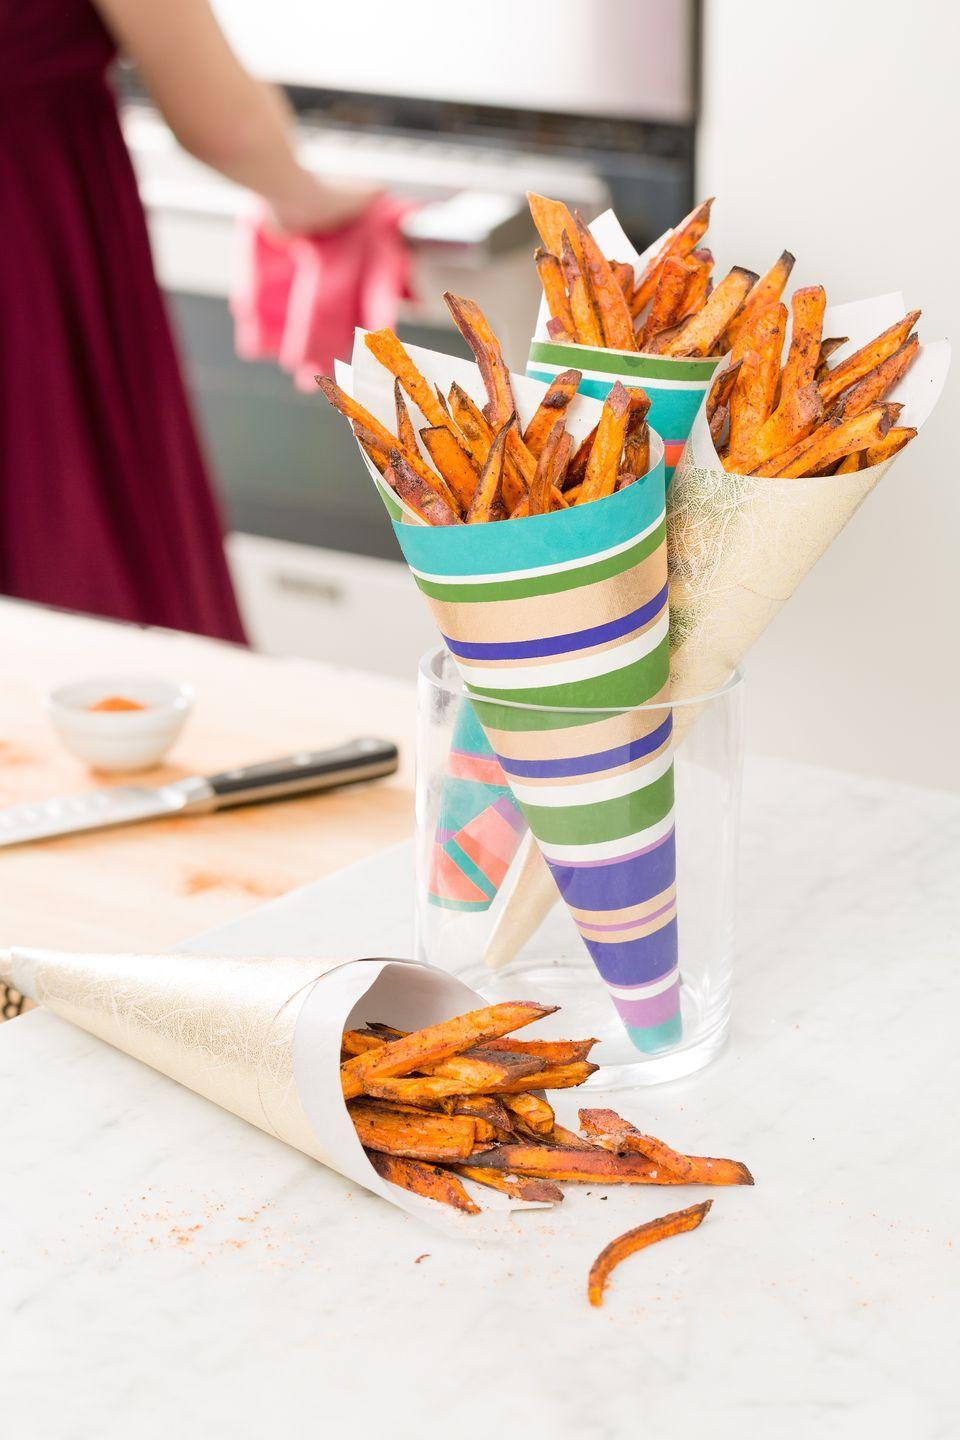 "<p>Spice up your sweet potato fries with chipotle seasoning and citrusy ranch crema.</p><p>Get the recipe from <a href=""/cooking/recipe-ideas/recipes/a44687/spiced-sweet-potato-fries-ranch-crema-recipe/"" data-ylk=""slk:Delish"" class=""link rapid-noclick-resp"">Delish</a>.</p>"